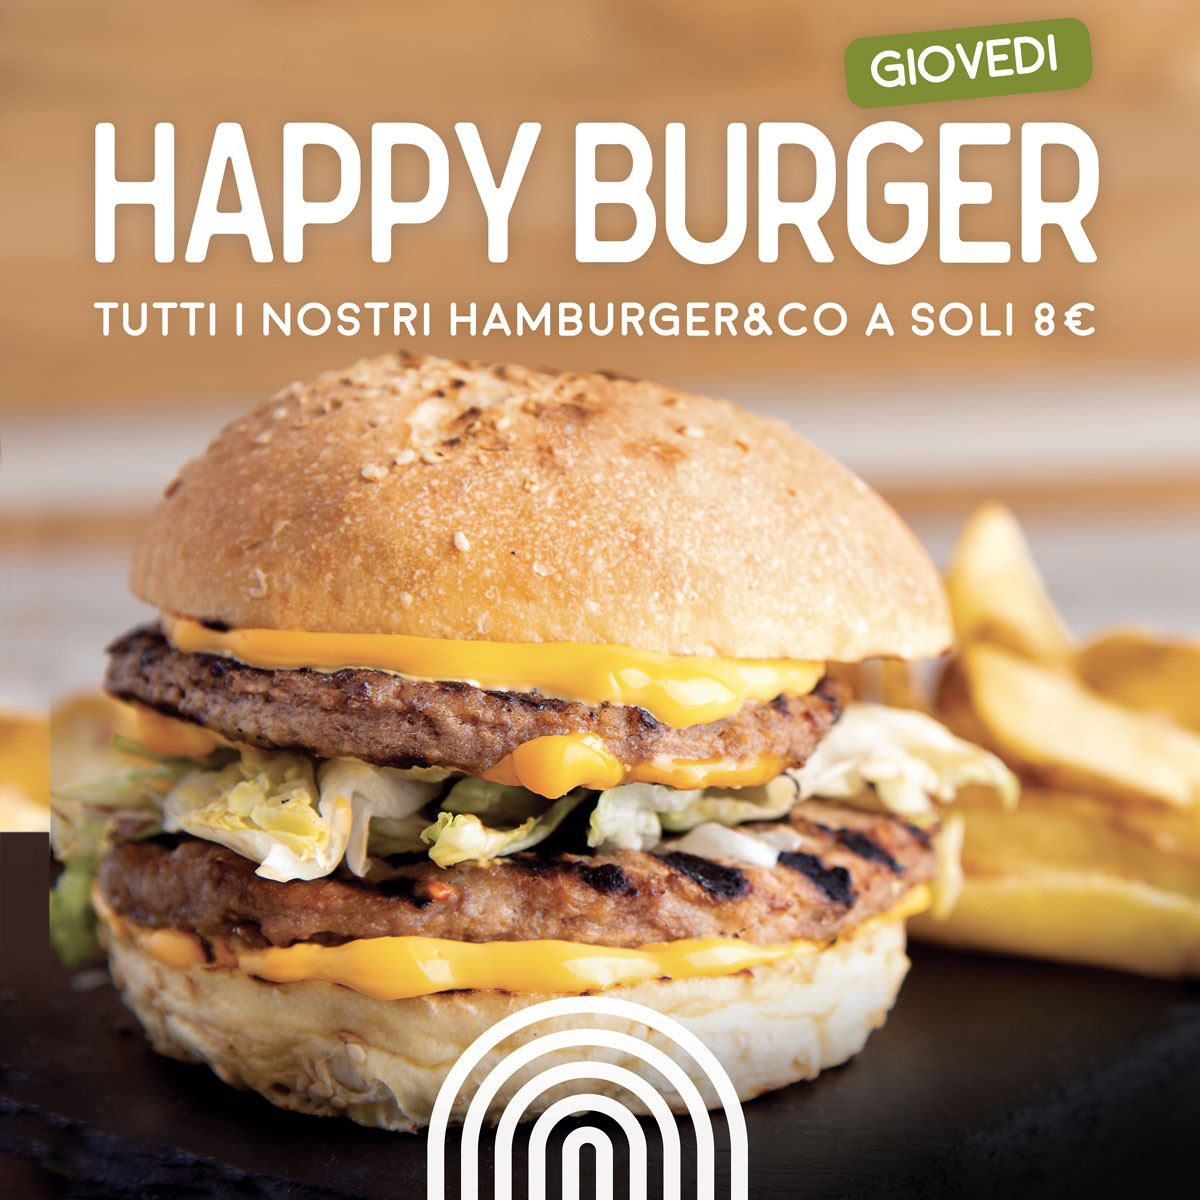 PROMO_HAMBURGER